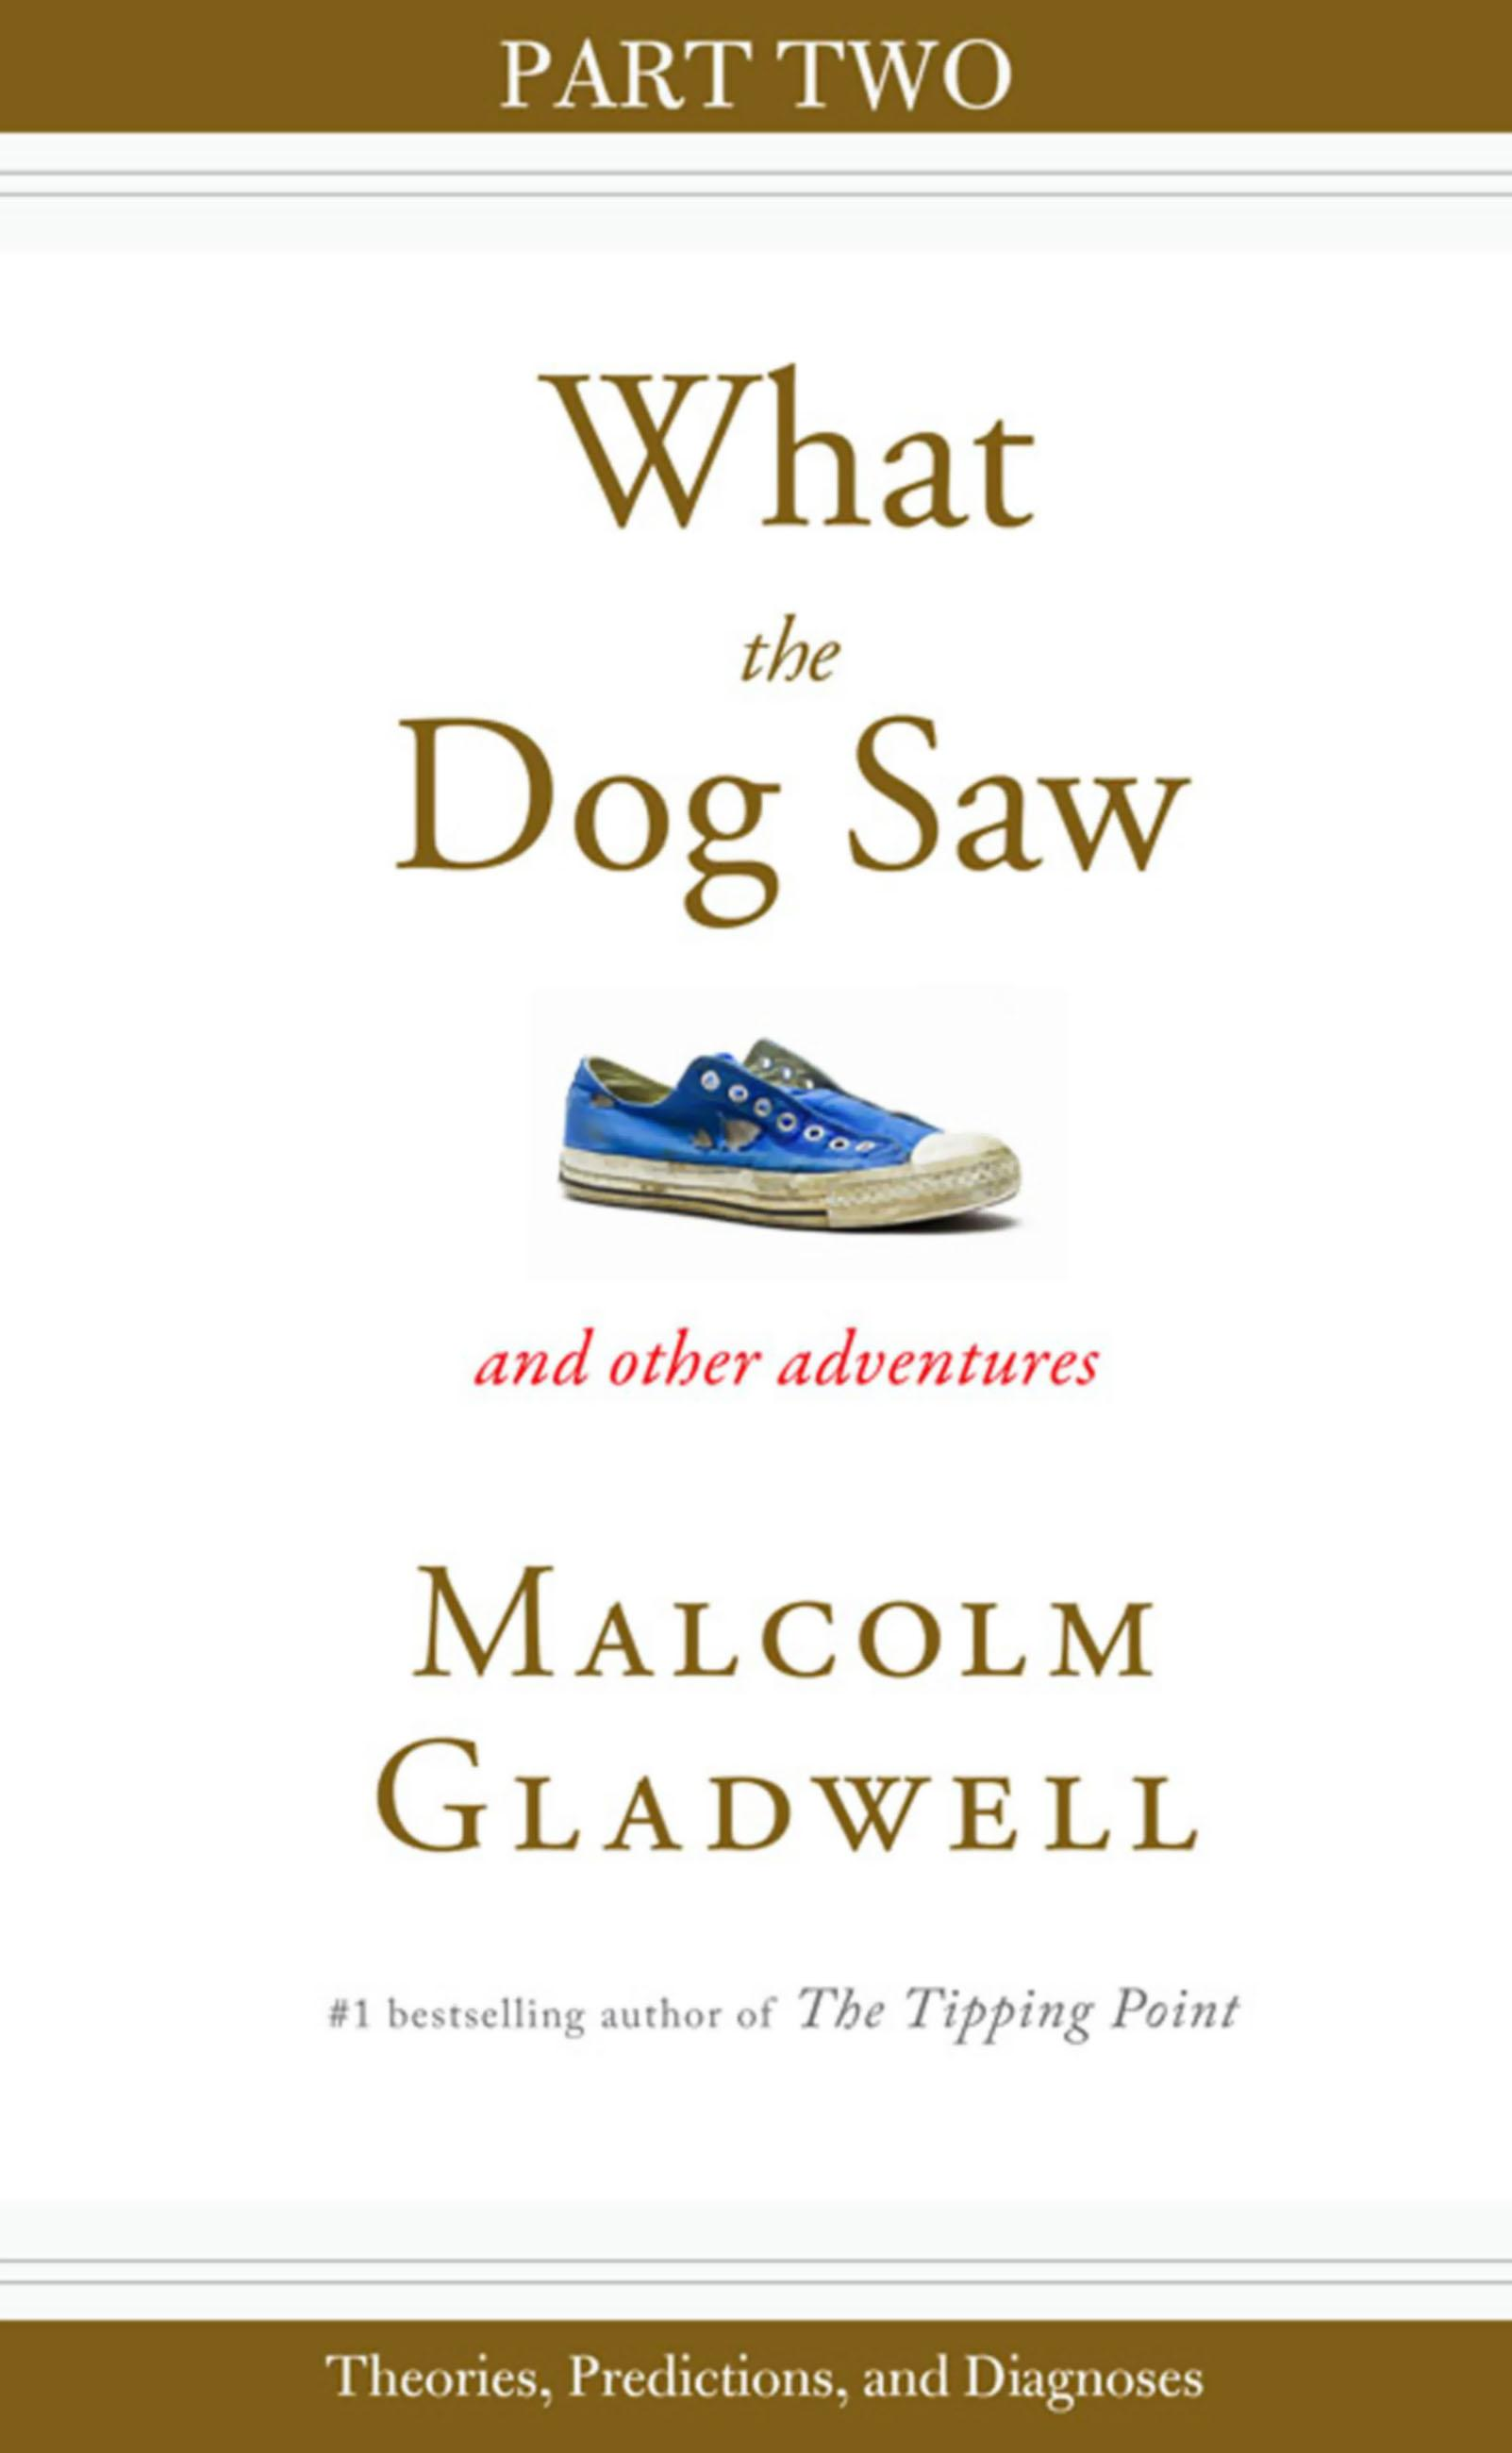 Theories, Predictions, and Diagnoses - Malcolm Gladwell